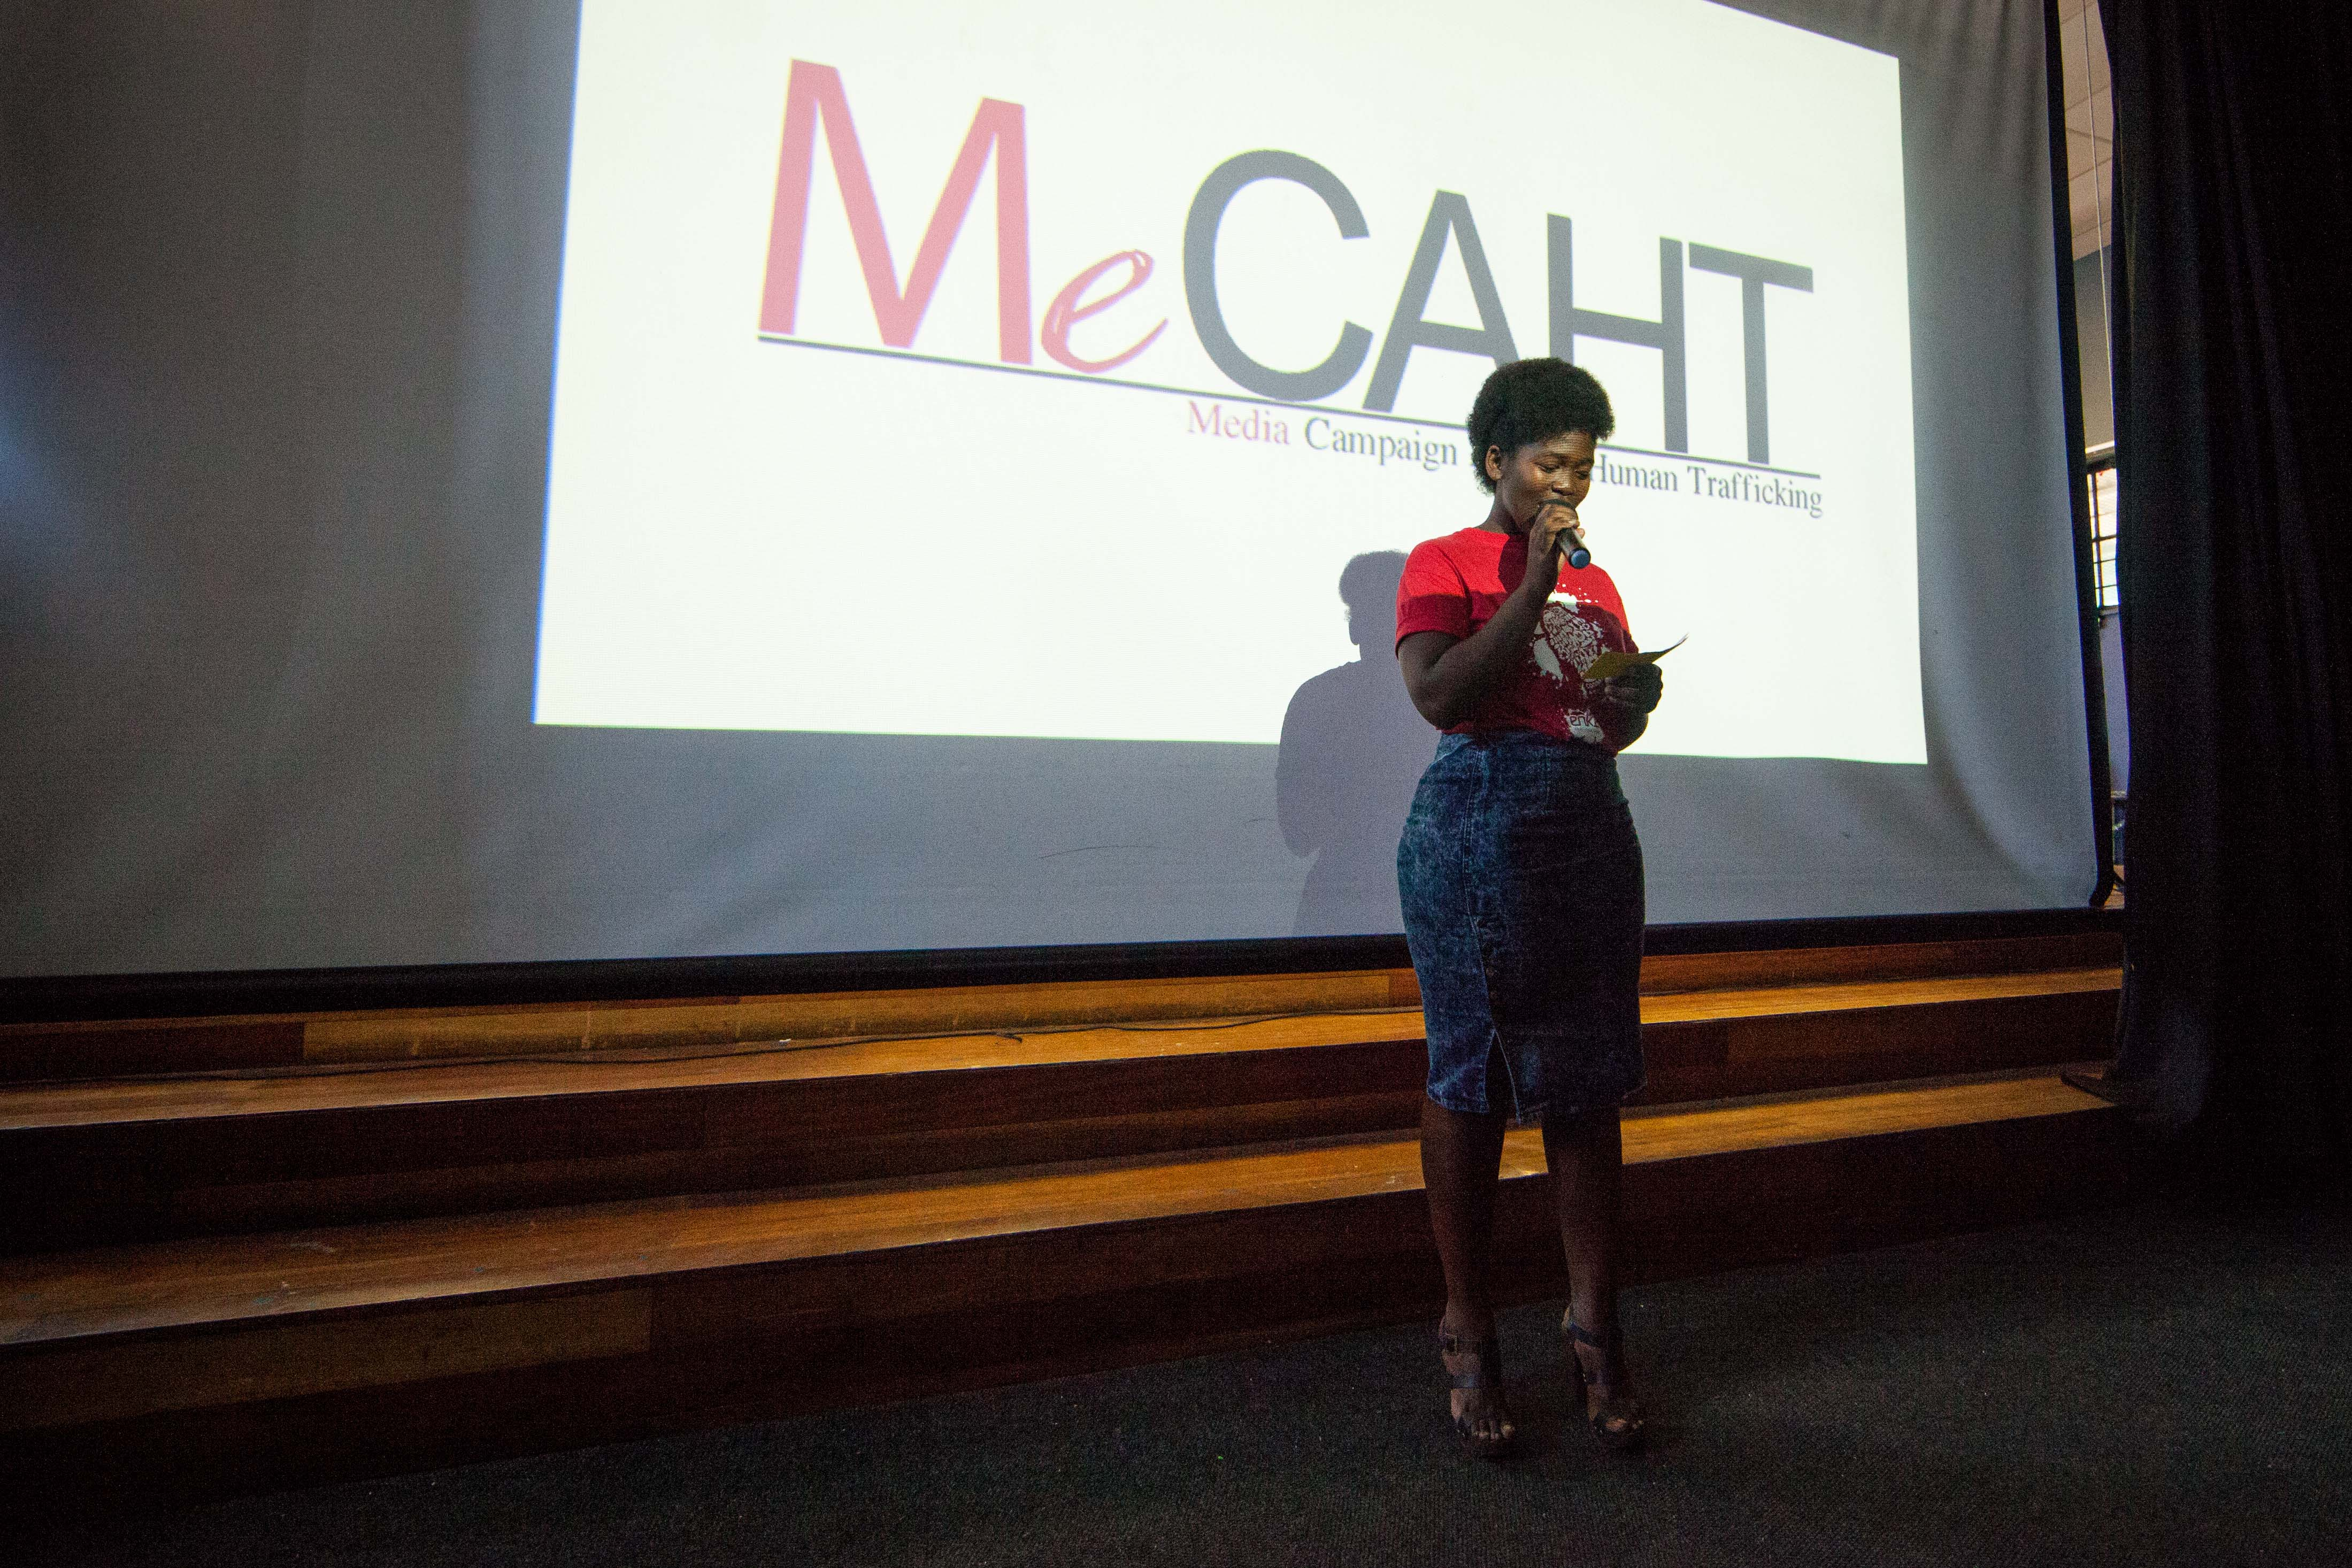 Dineo introduces Pam Zokufa, from the Media Campaign Against Human Trafficking (MeCAHT)